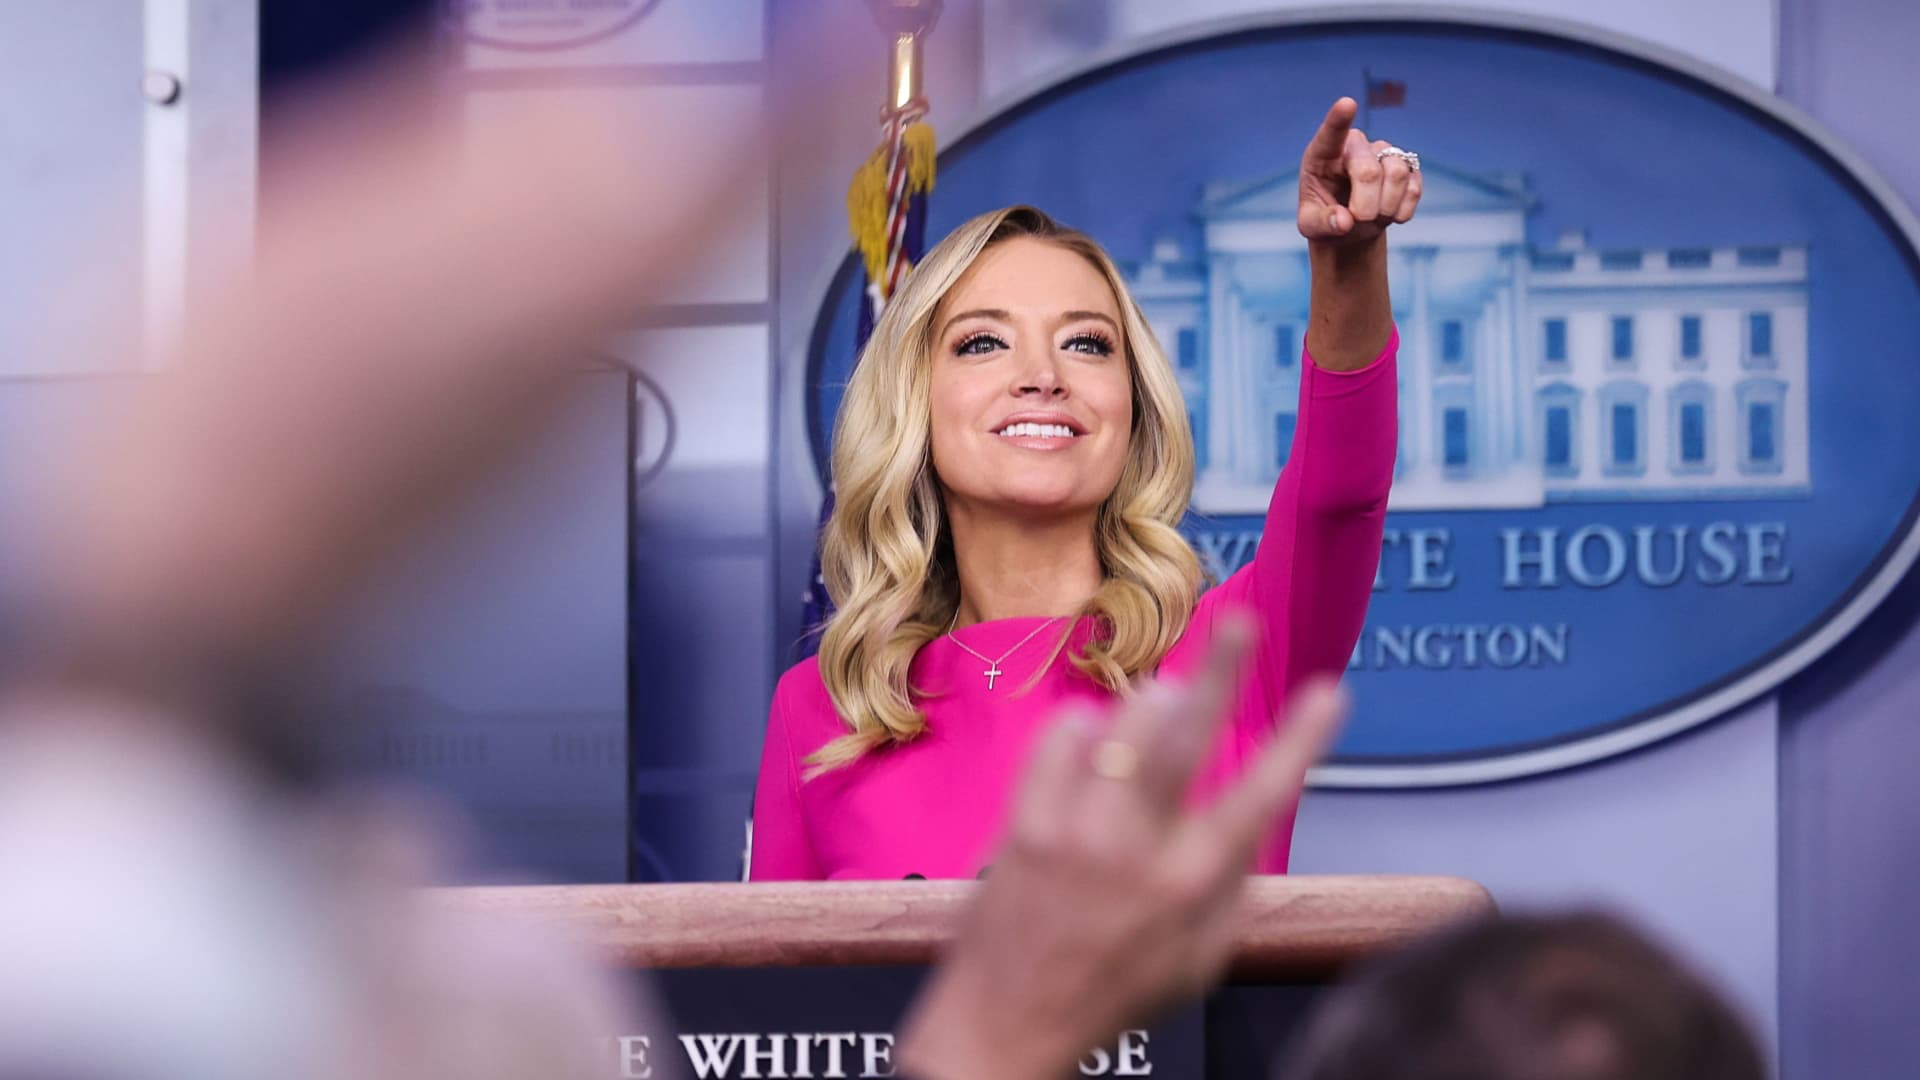 White House Press Secretary Kayleigh McEnany takes questions during a press briefing in the Brady Press Briefing Room at the White House in Washington, U.S., December 2, 2020.